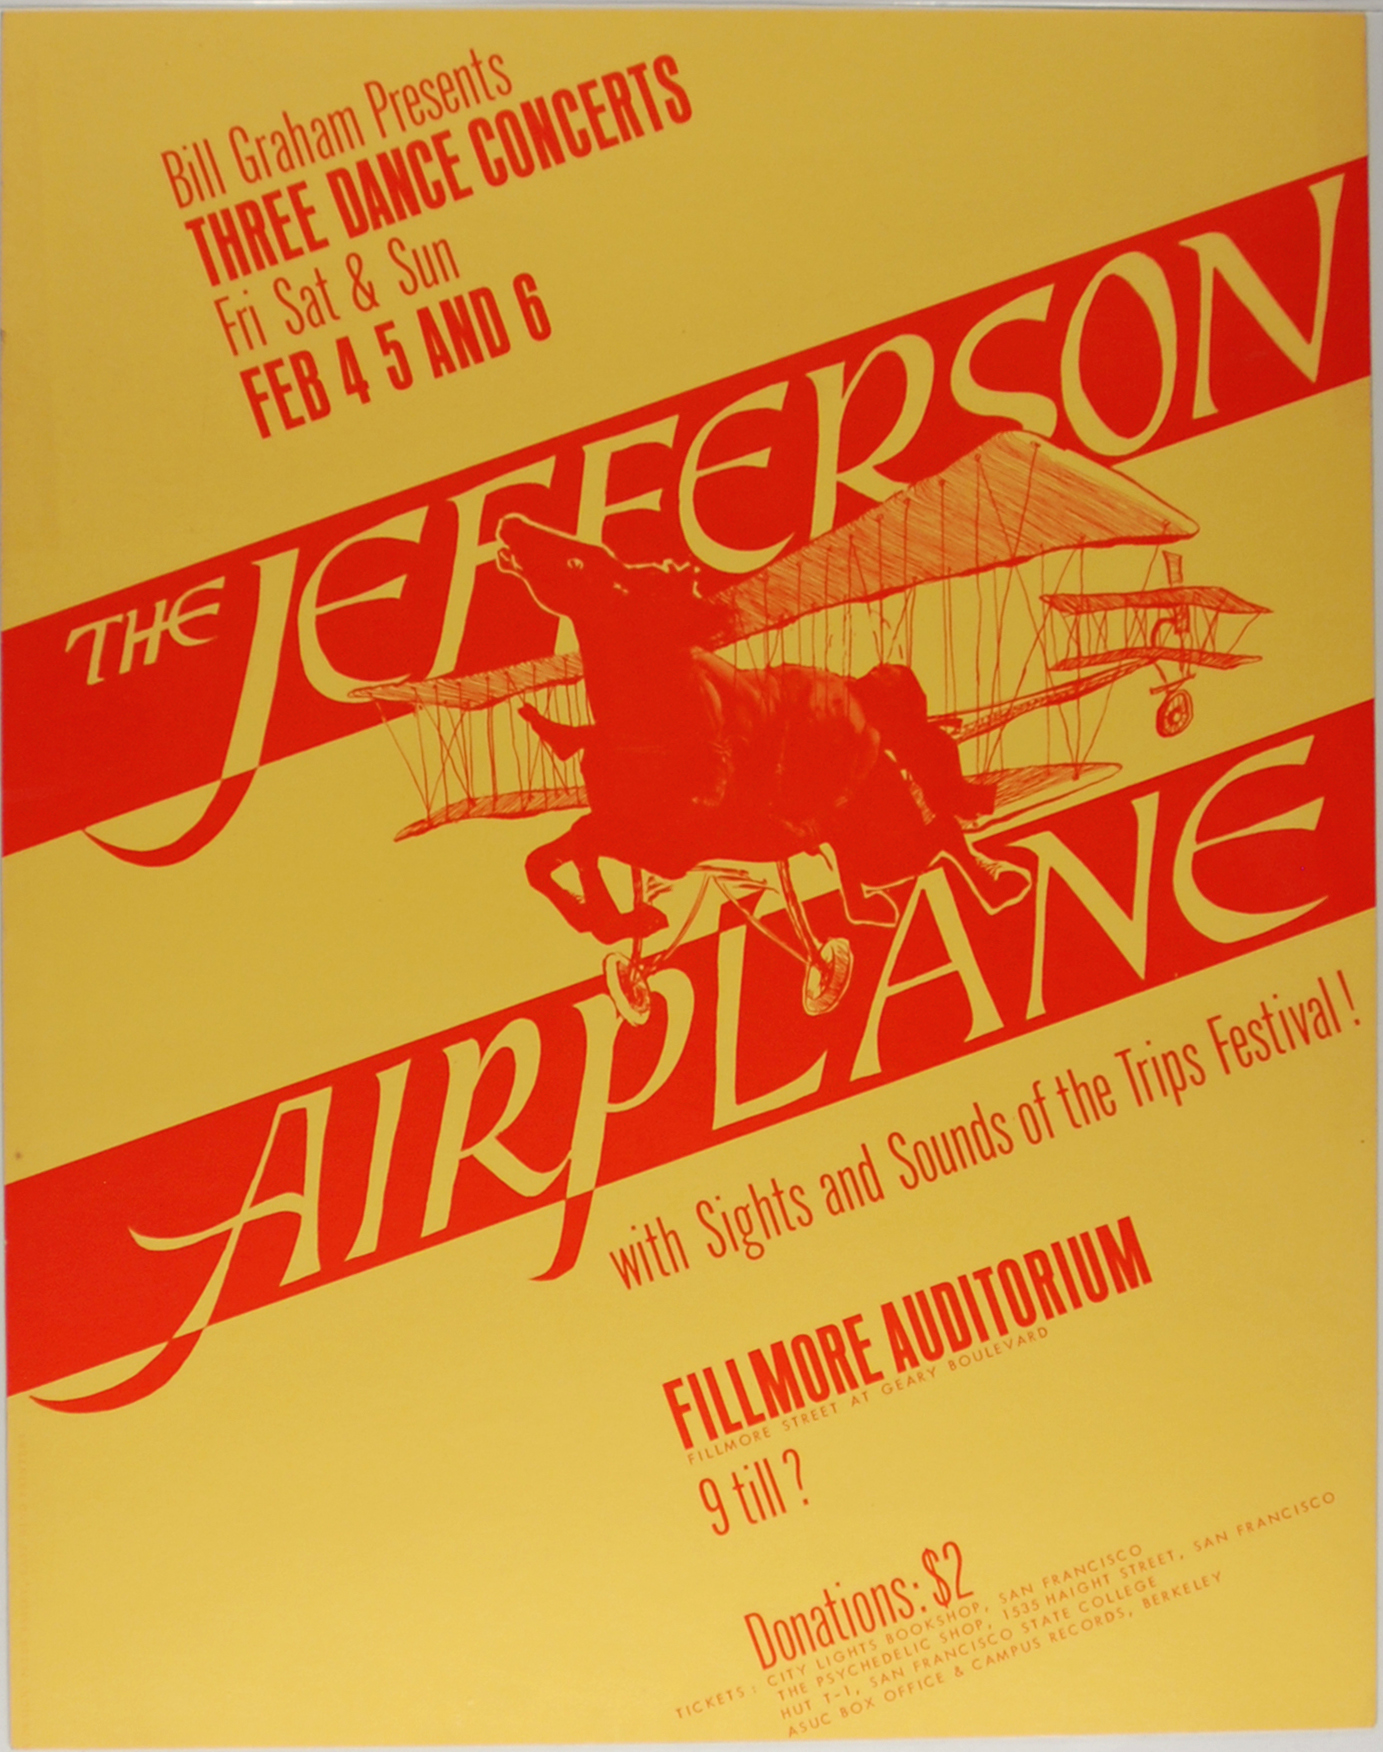 BG_1_Jefferson Airplane.jpg